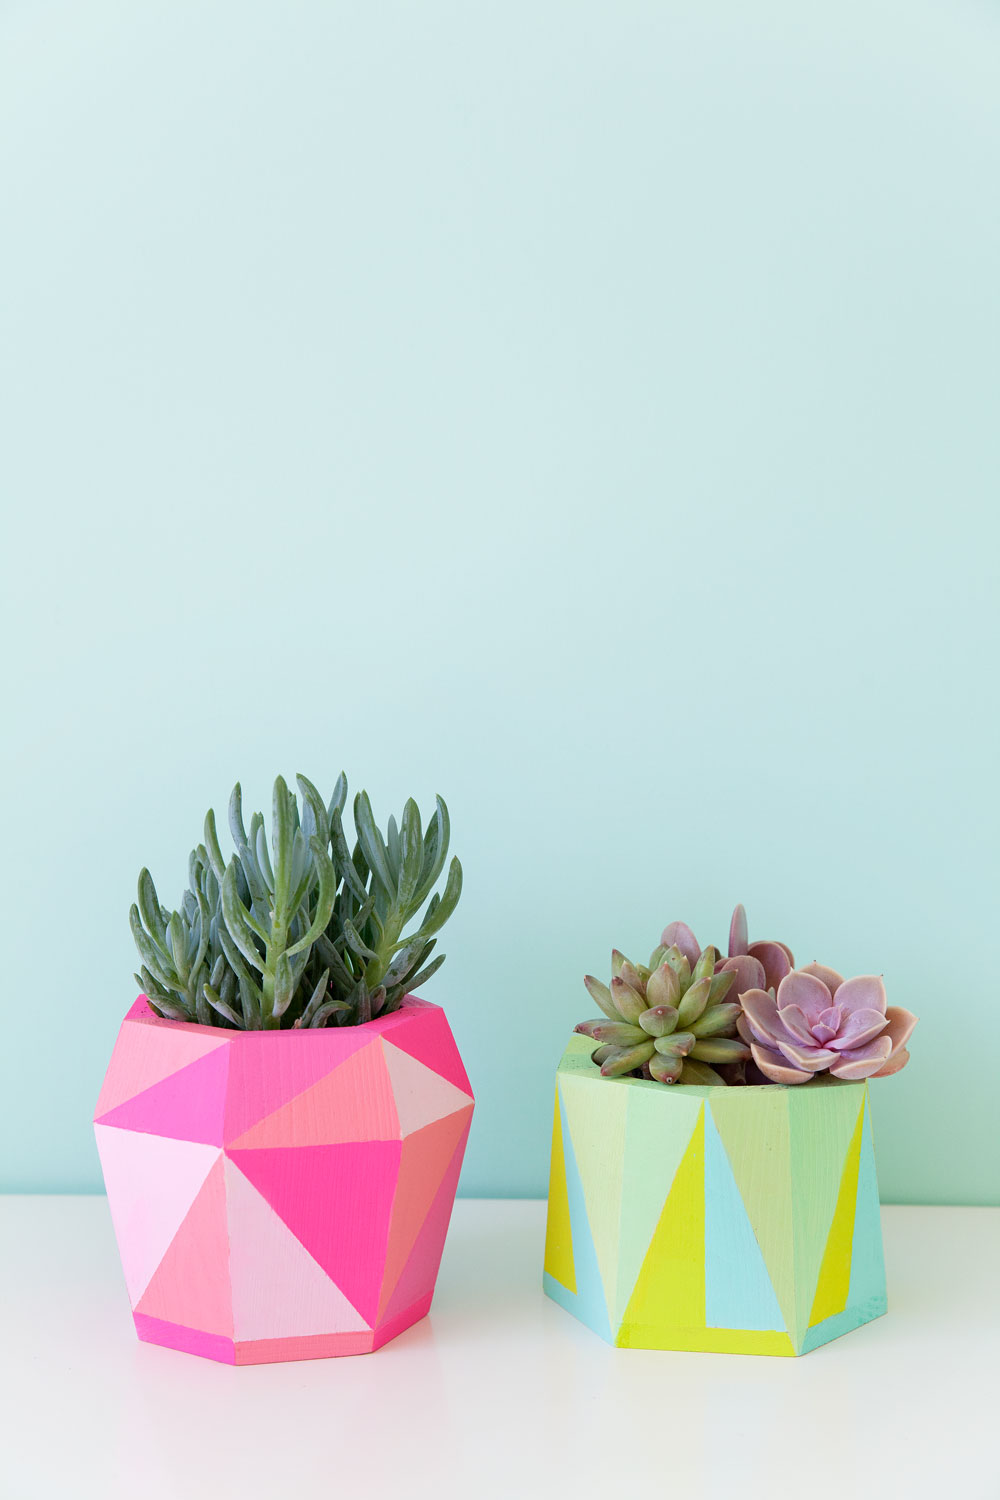 DIY-painted-geo-pots,-an-easy-DIY-that-is-colorful-and-fun